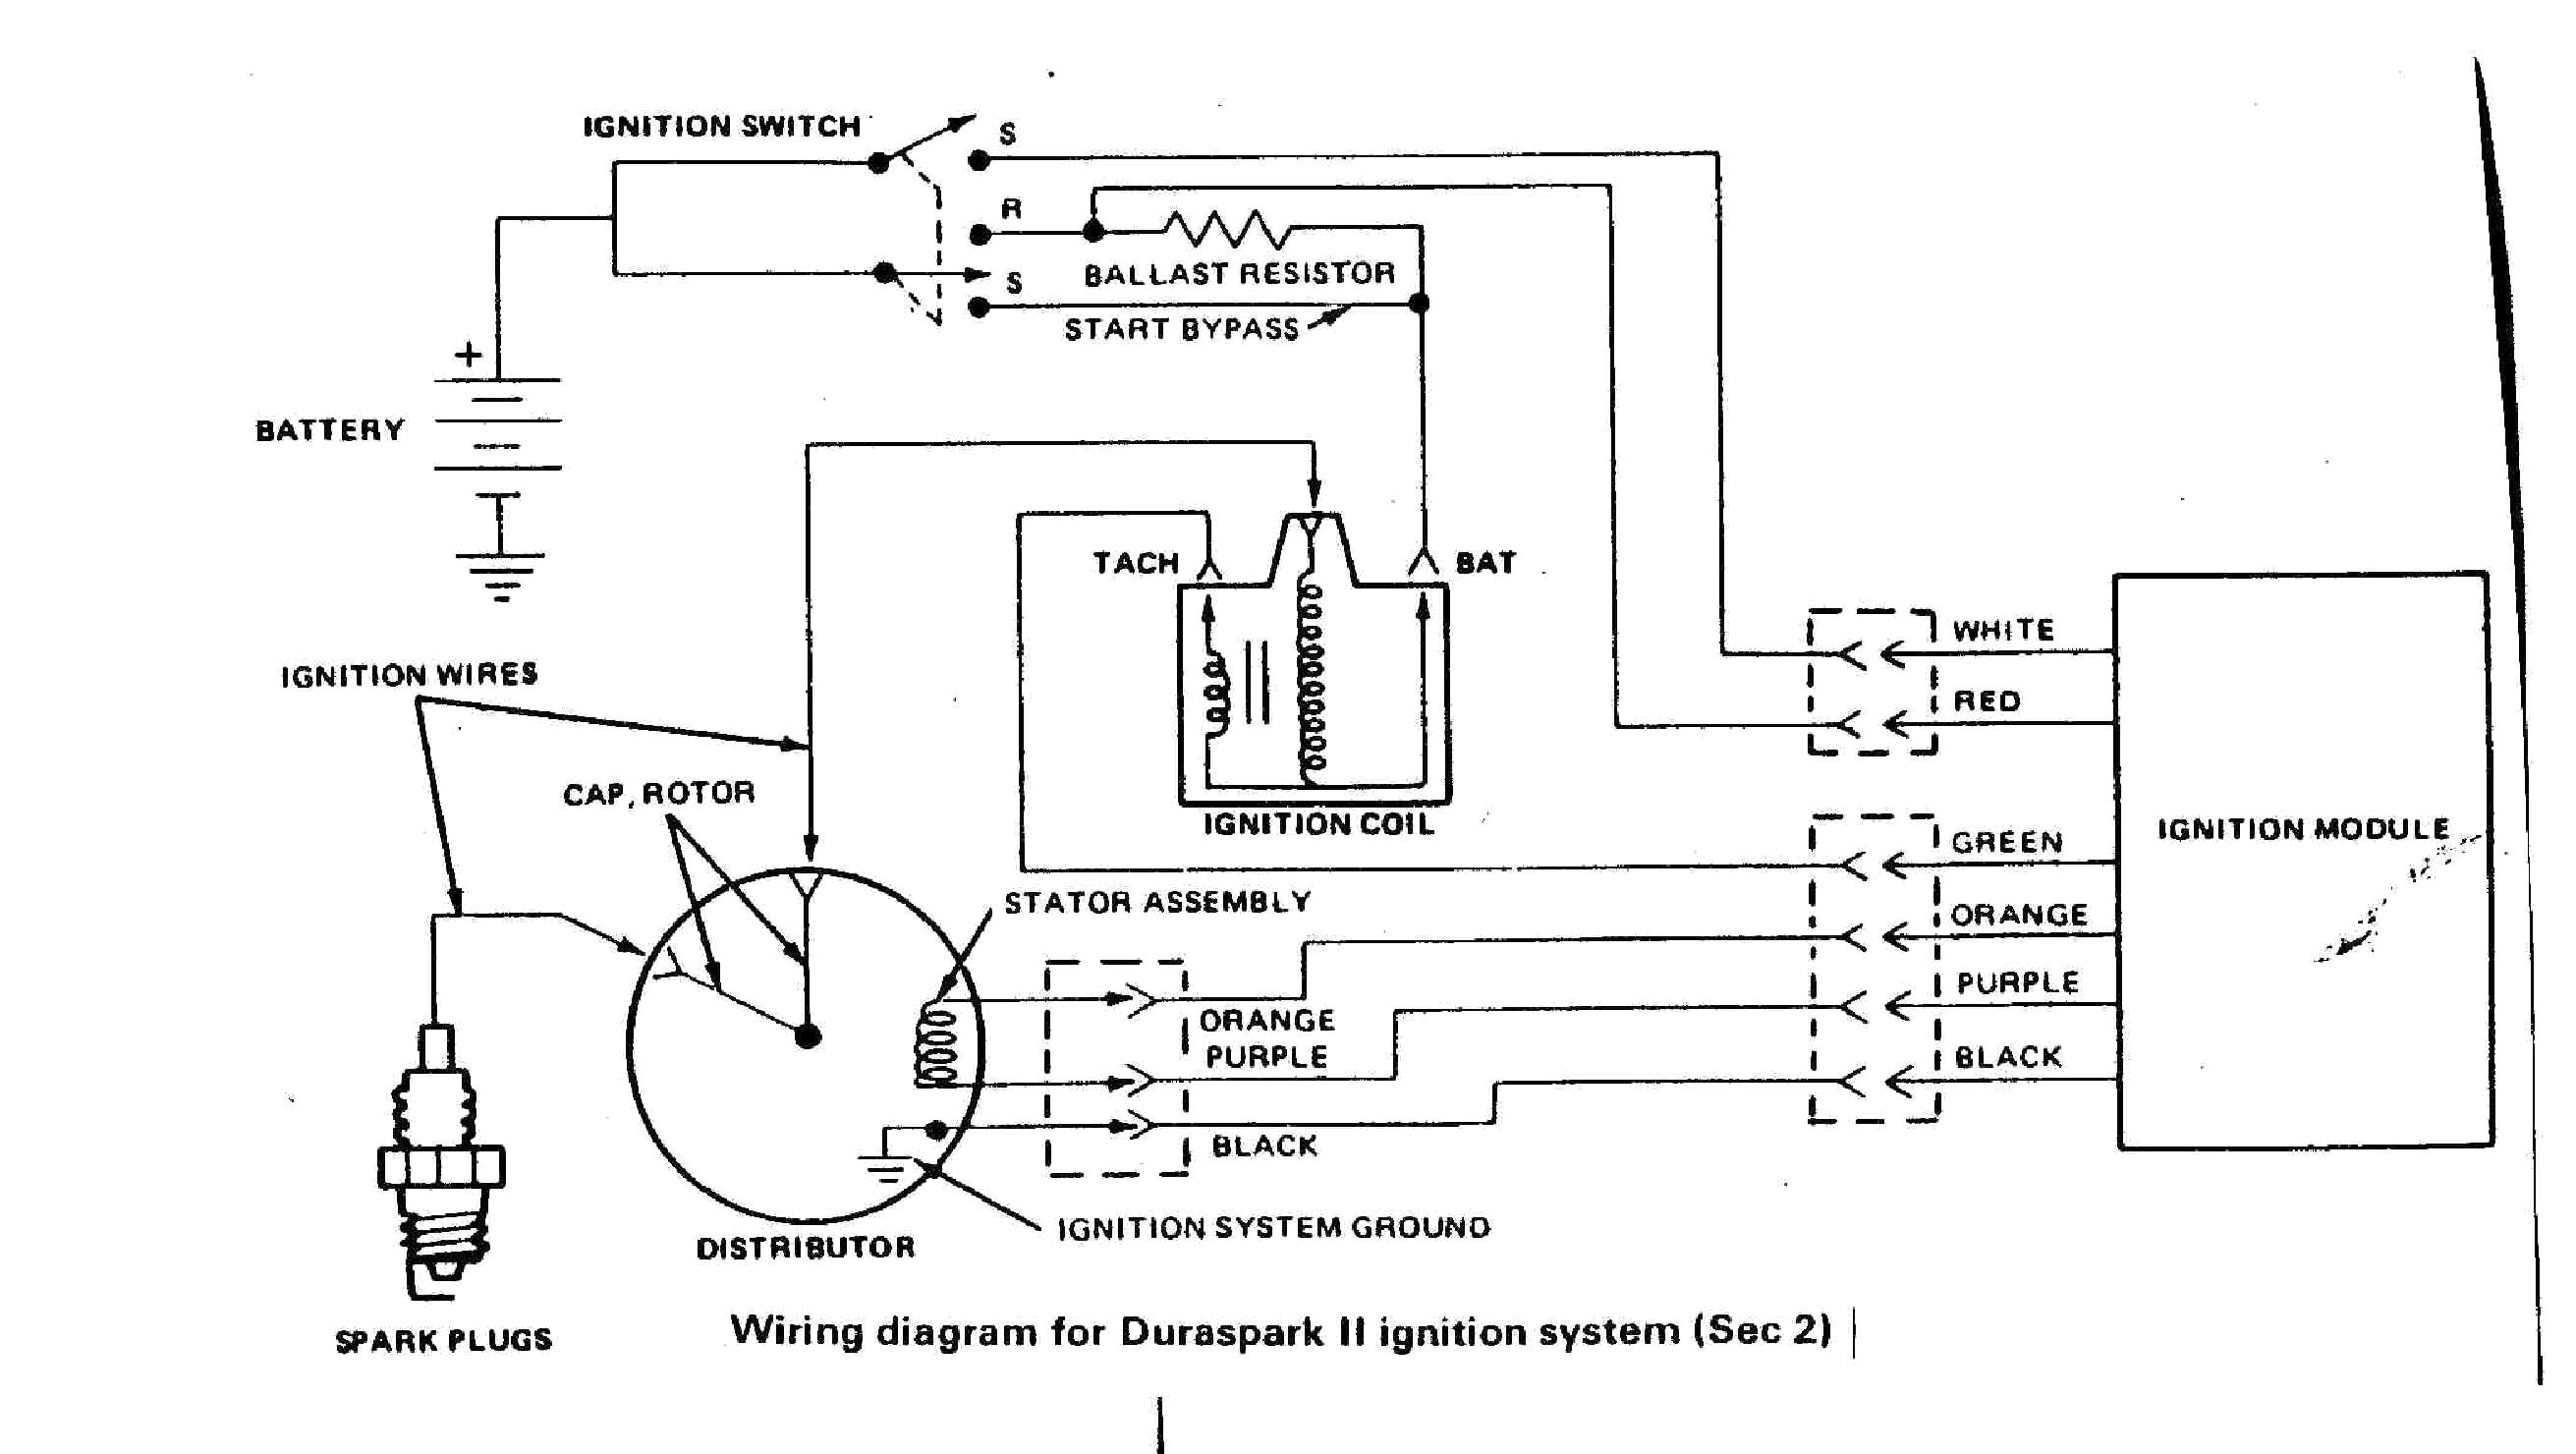 Ford Tractor Ignition Switch Wiring Diagram Unique ford Tractor Ignition Switch Wiring Diagram Fresh Excellent Volvo